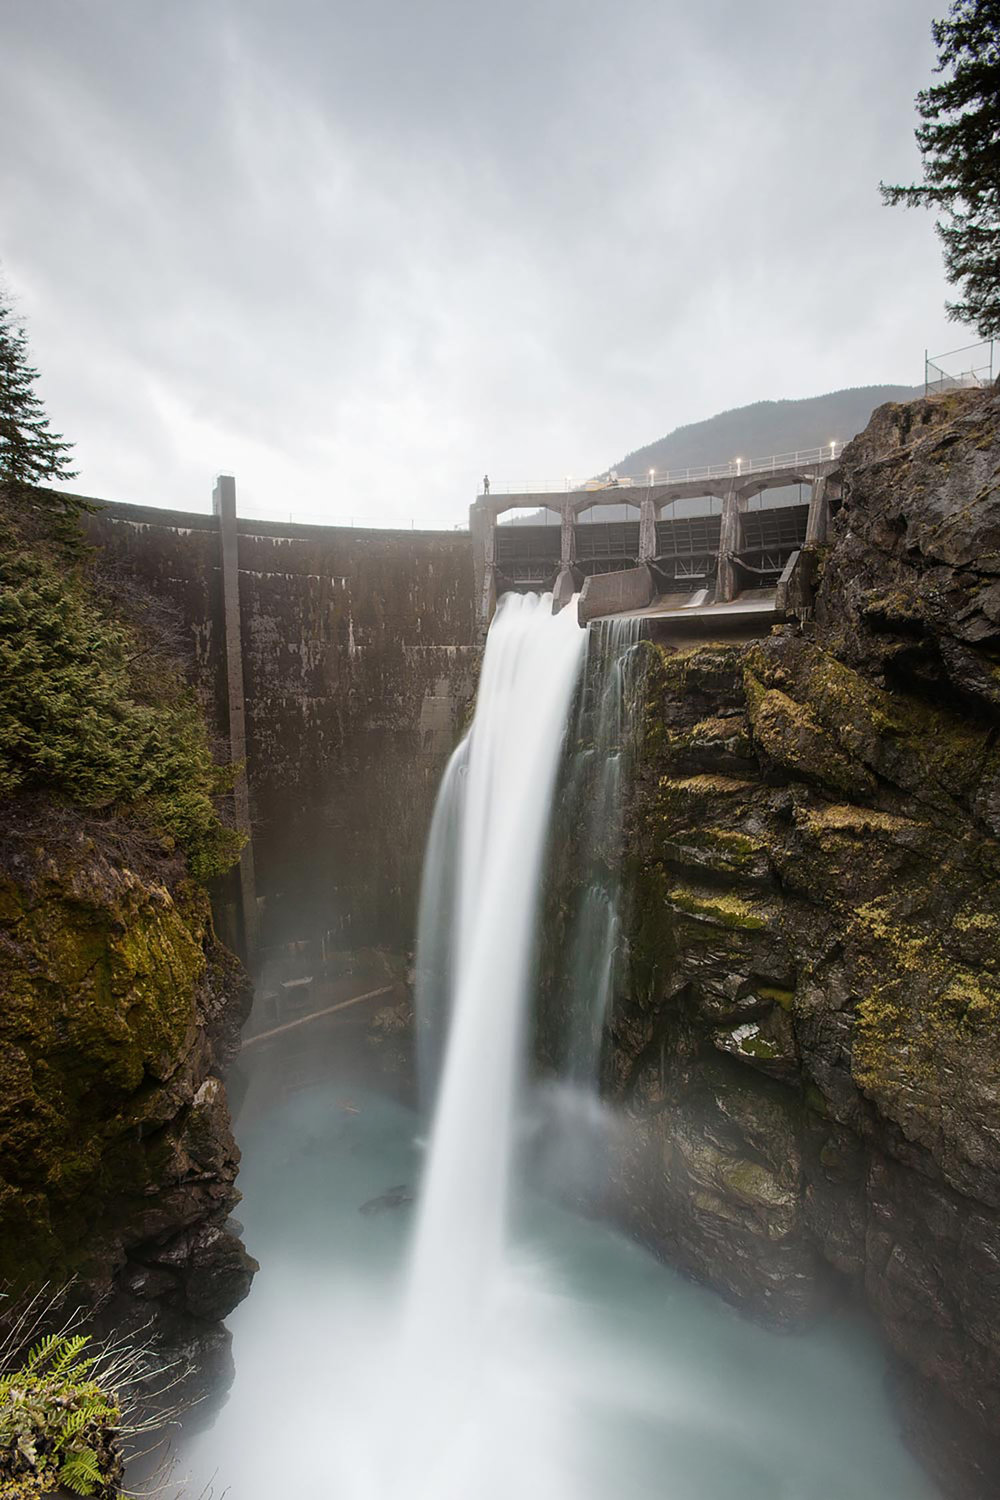 Elwha Dam, Port Angeles, WA, 2011